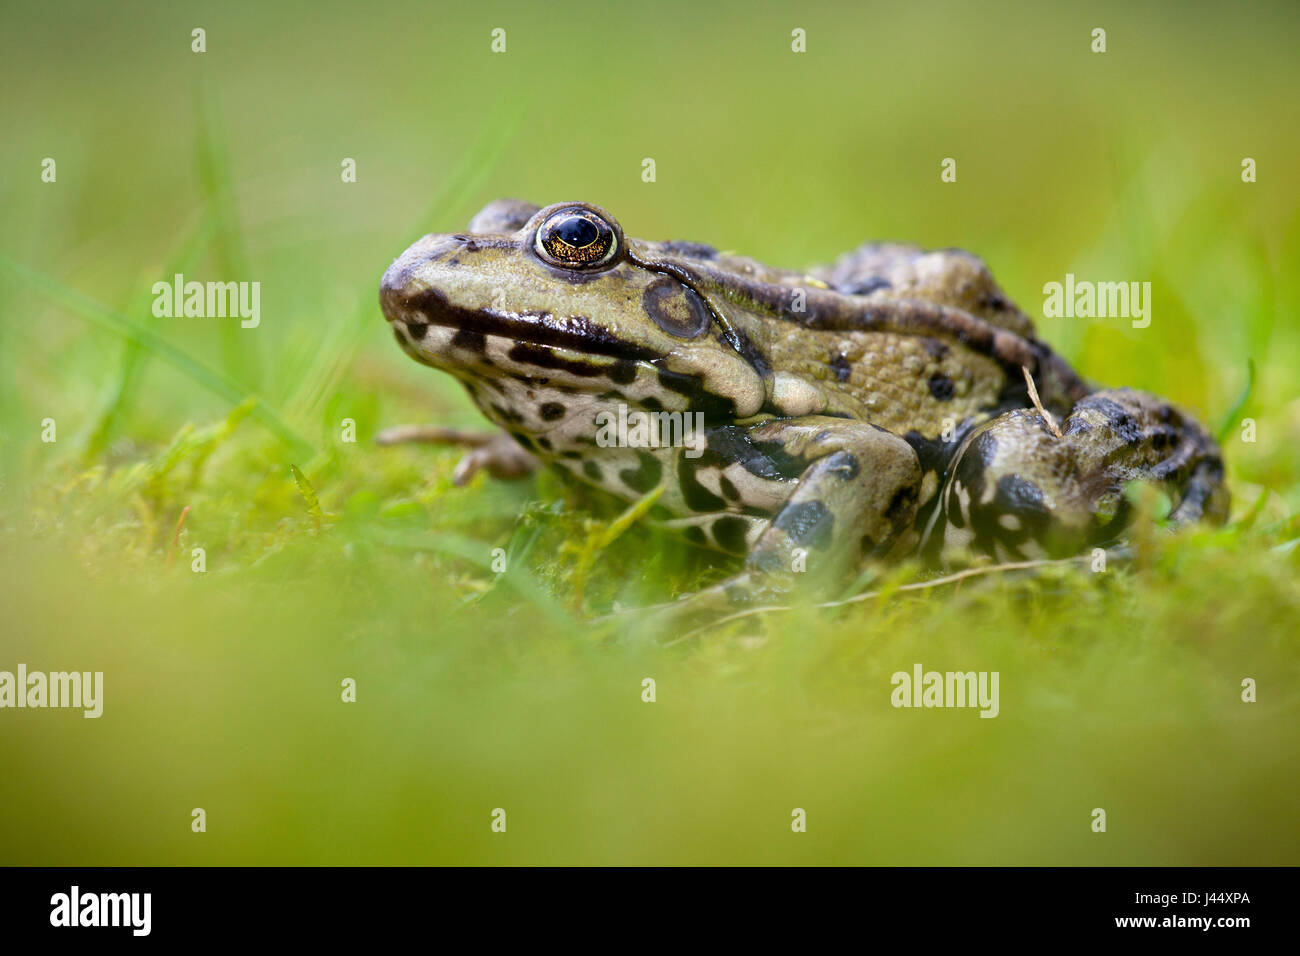 photo of a marsh frog in green grass against a green background Stock Photo